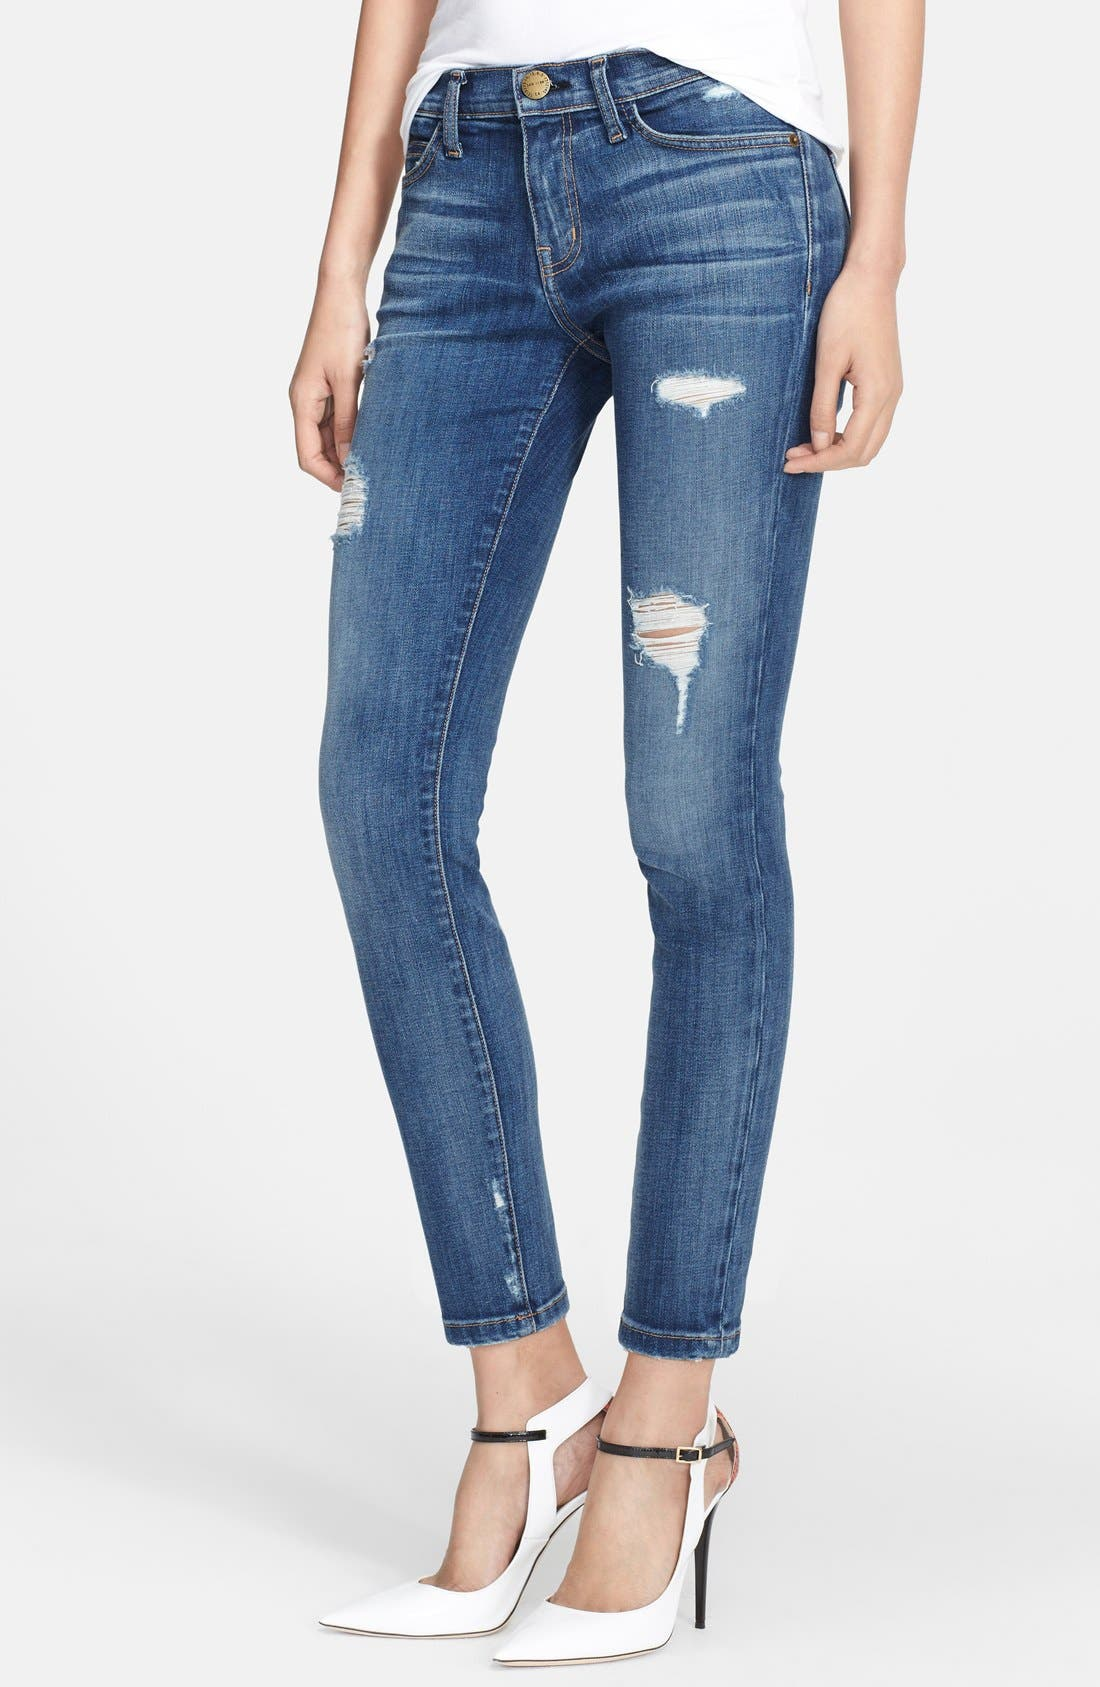 Low Rise Skinny Jeans for Women | Nordstrom